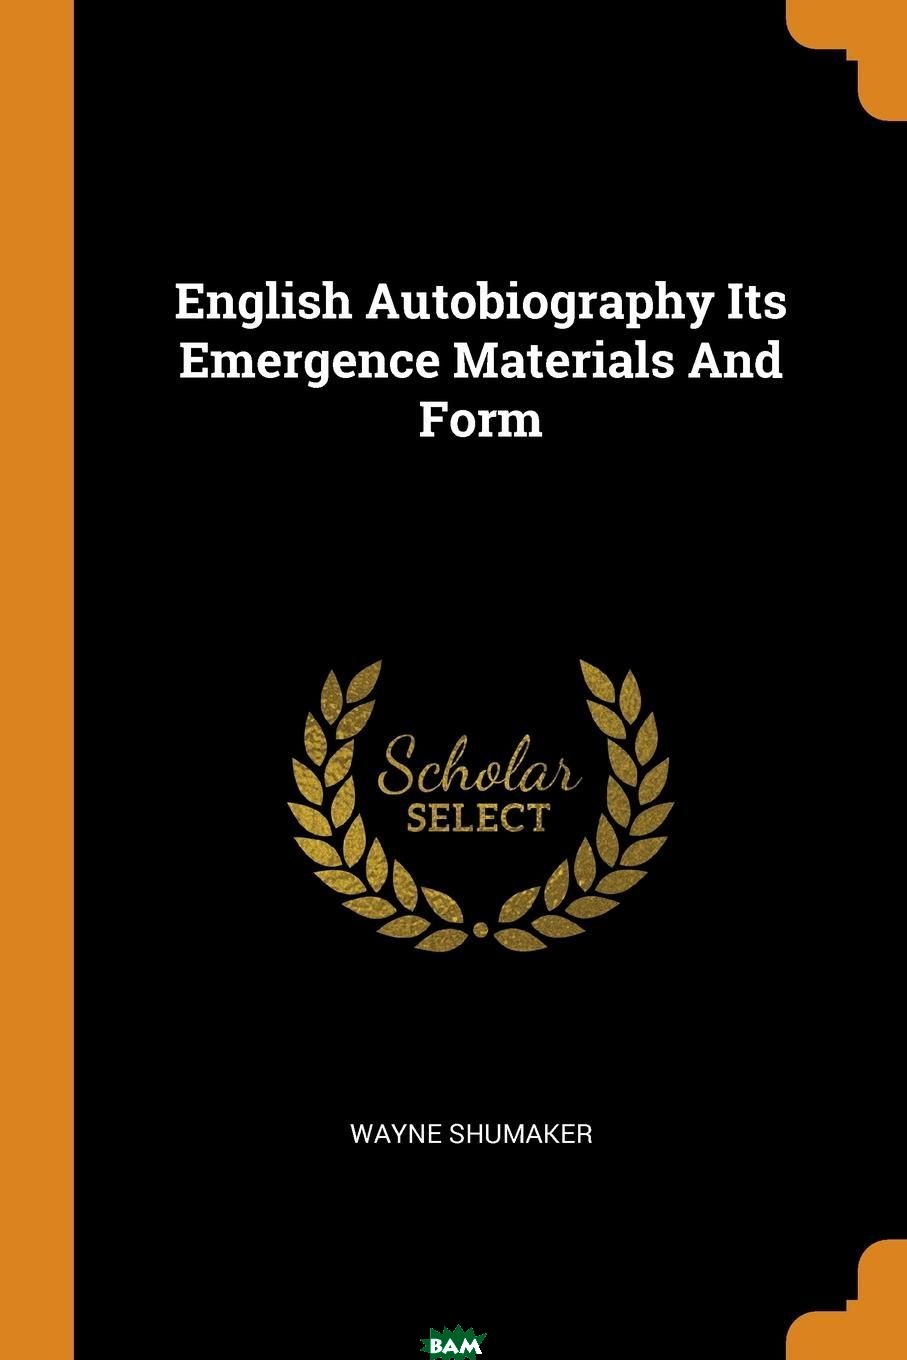 Купить English Autobiography Its Emergence Materials And Form, Wayne Shumaker, 9780353236042